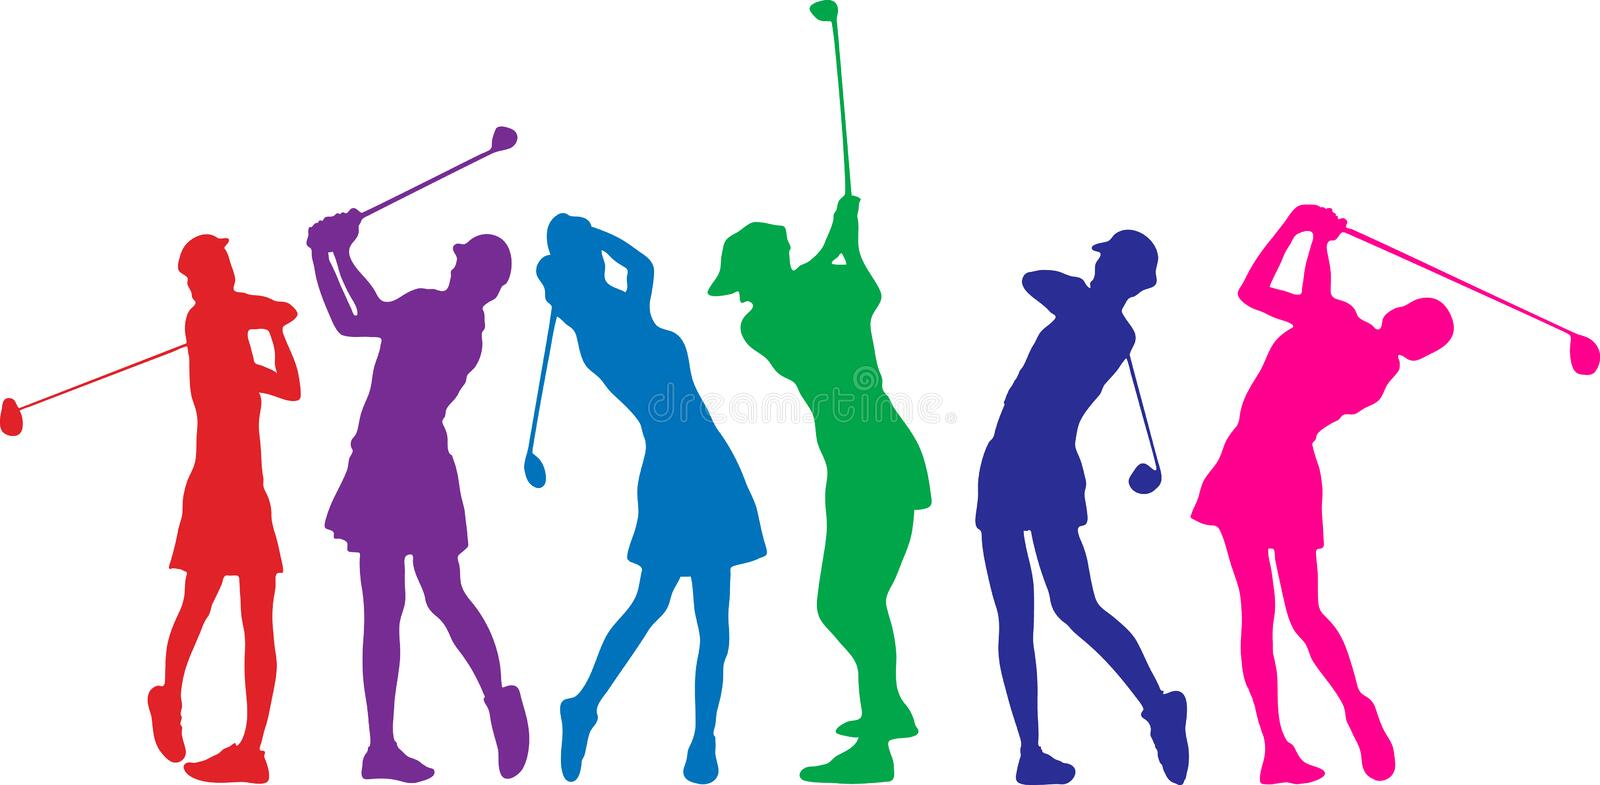 Golf girls vector illustration